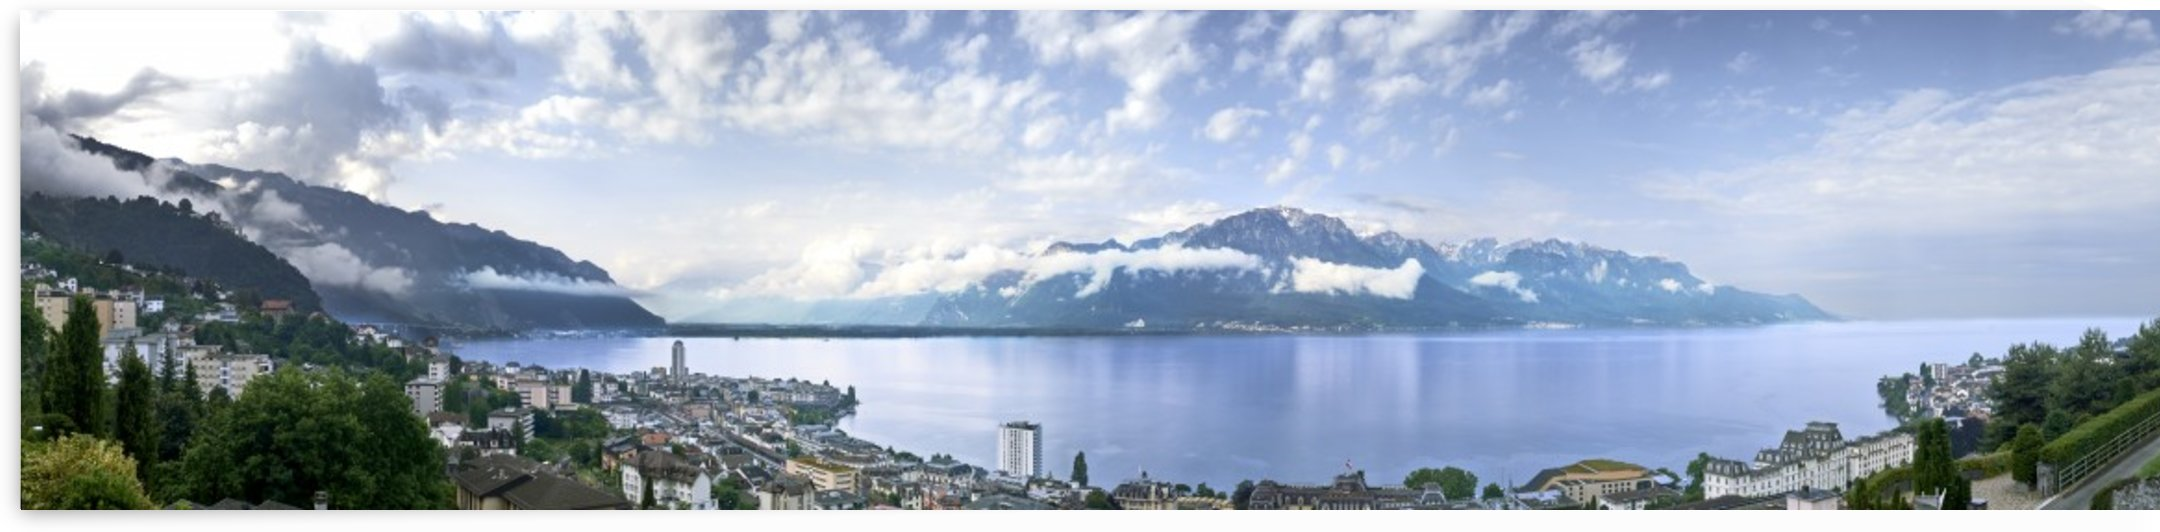 Montreux by Adrian Brockwell